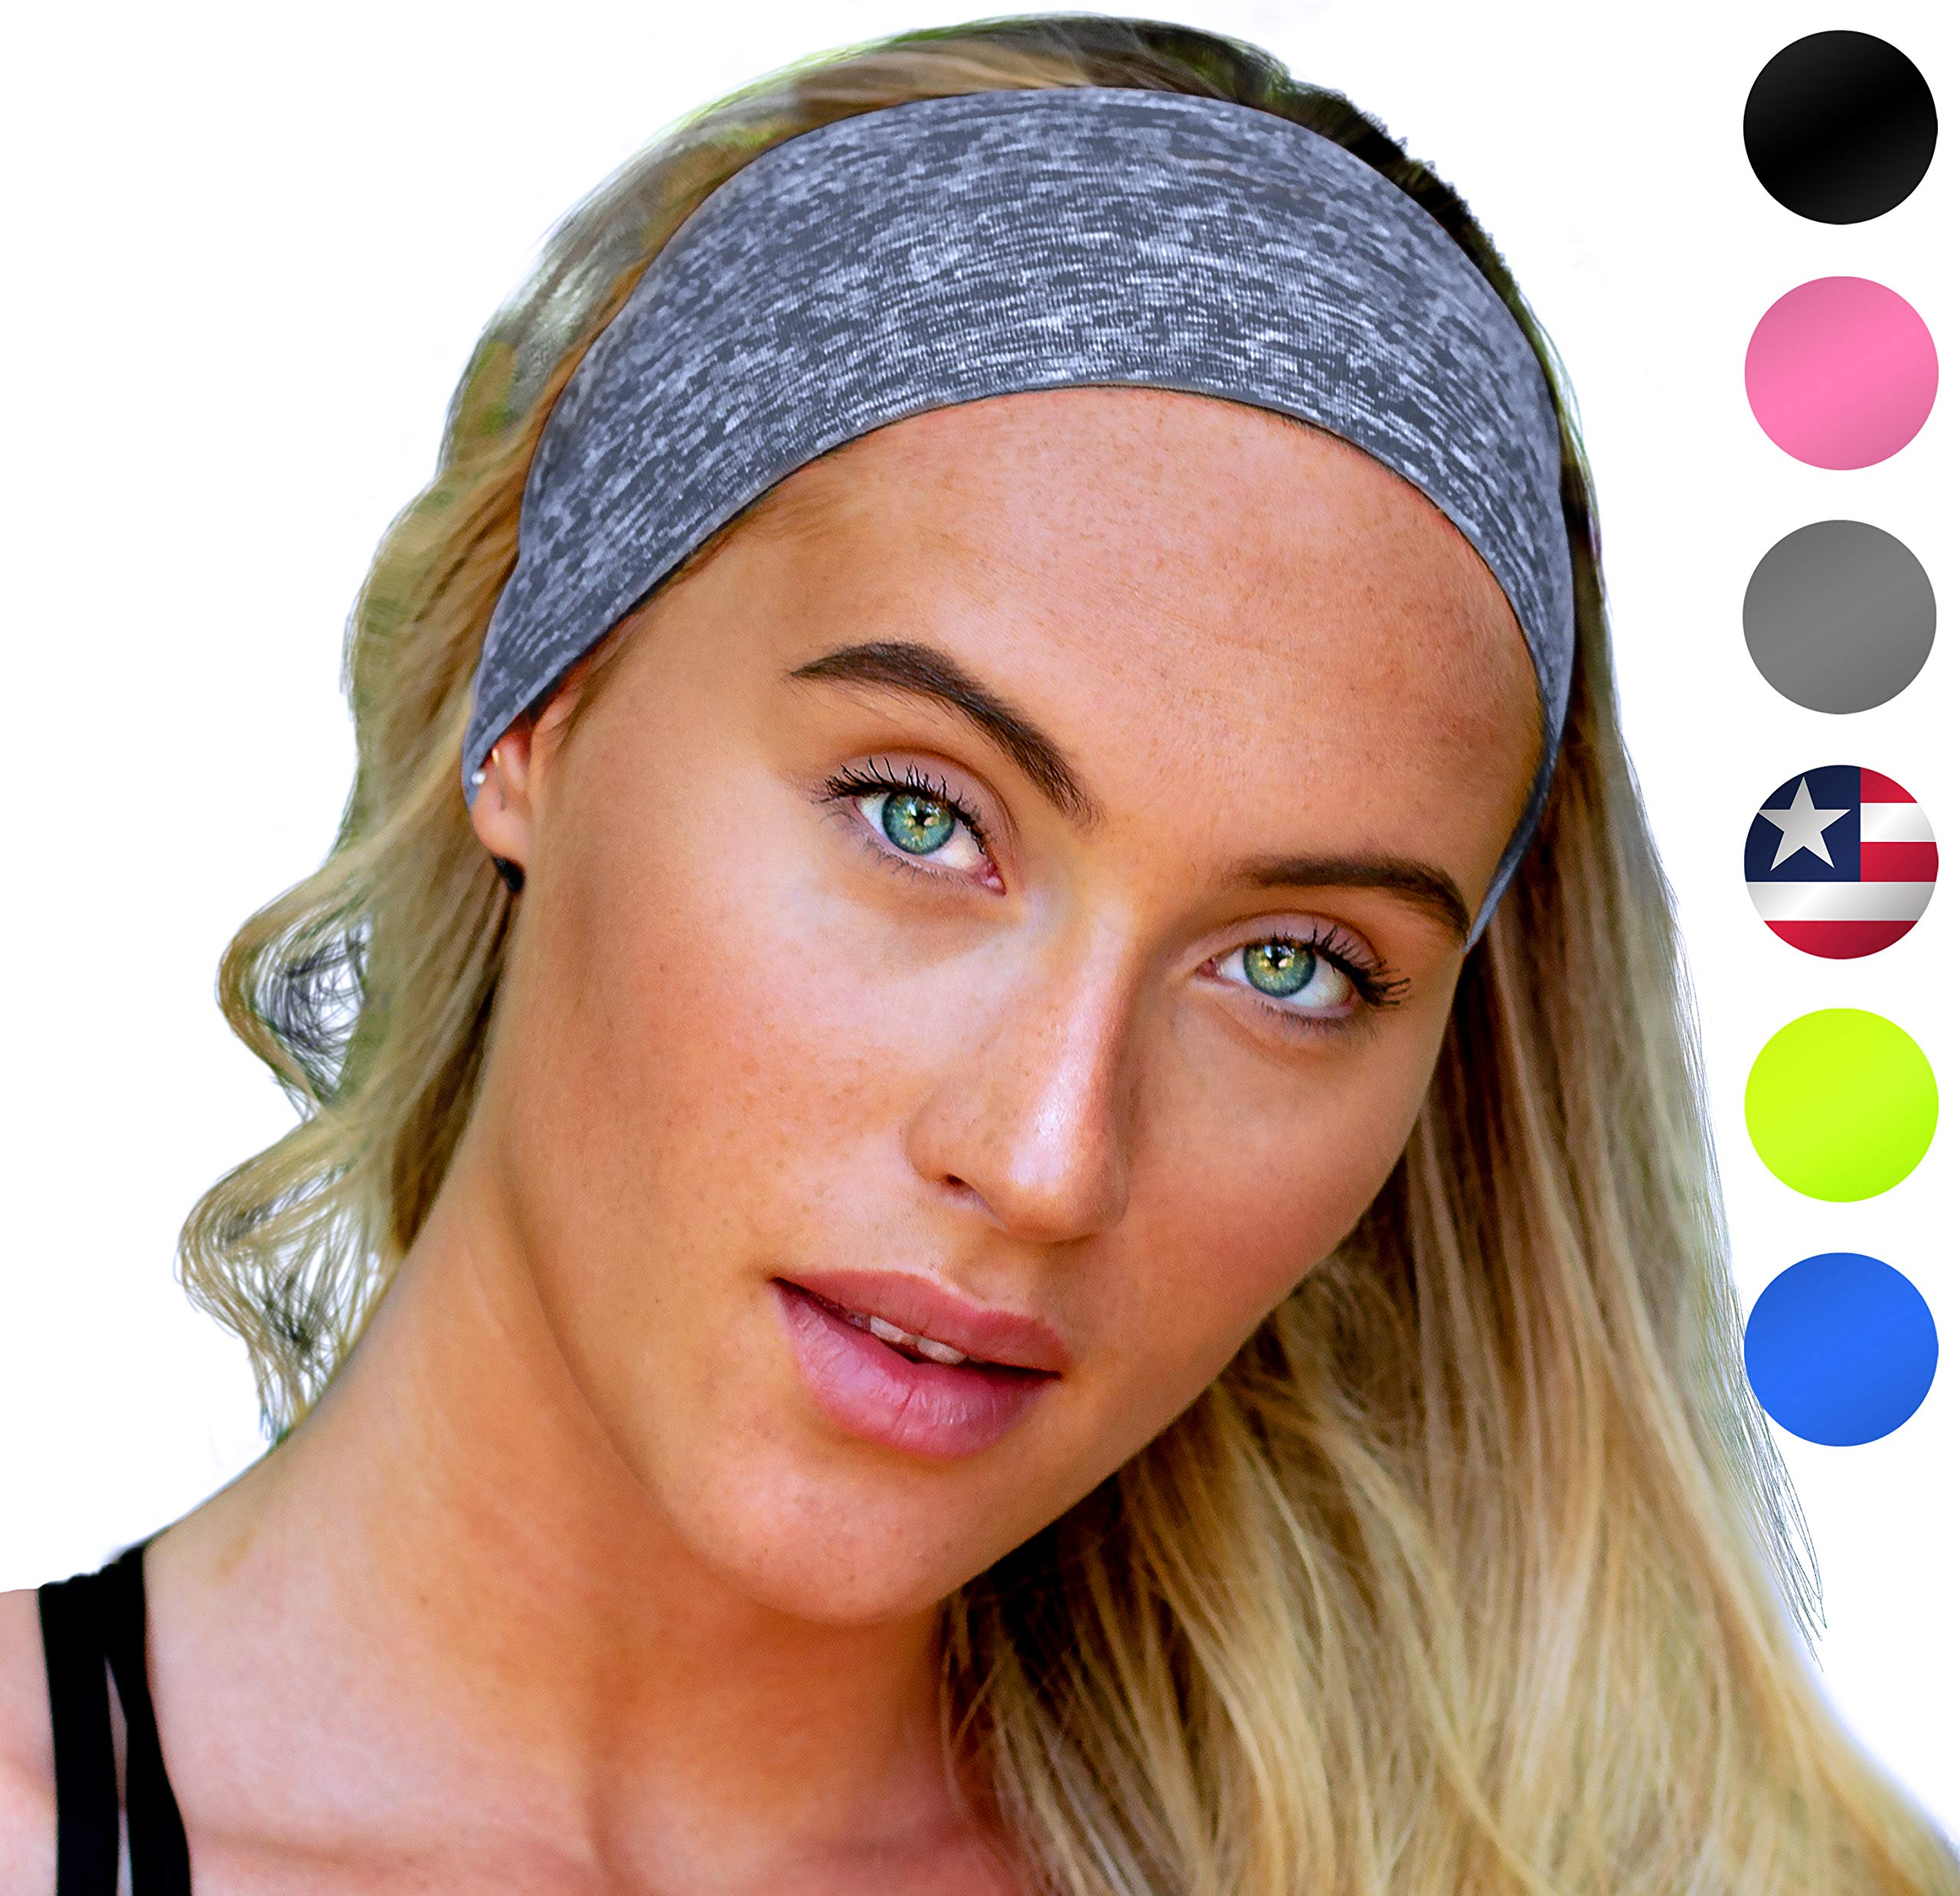 Yoga Headband: UNISEX Fitness Headbands For Women Girls & Men Head Band Sweatband for Running, Workout Gym Exercise. NO SLIP Sport Wrap Sweatbands & Sweat Wicking Athletic HeadWrap Bands Fit Over Hair by E Tronic Edge